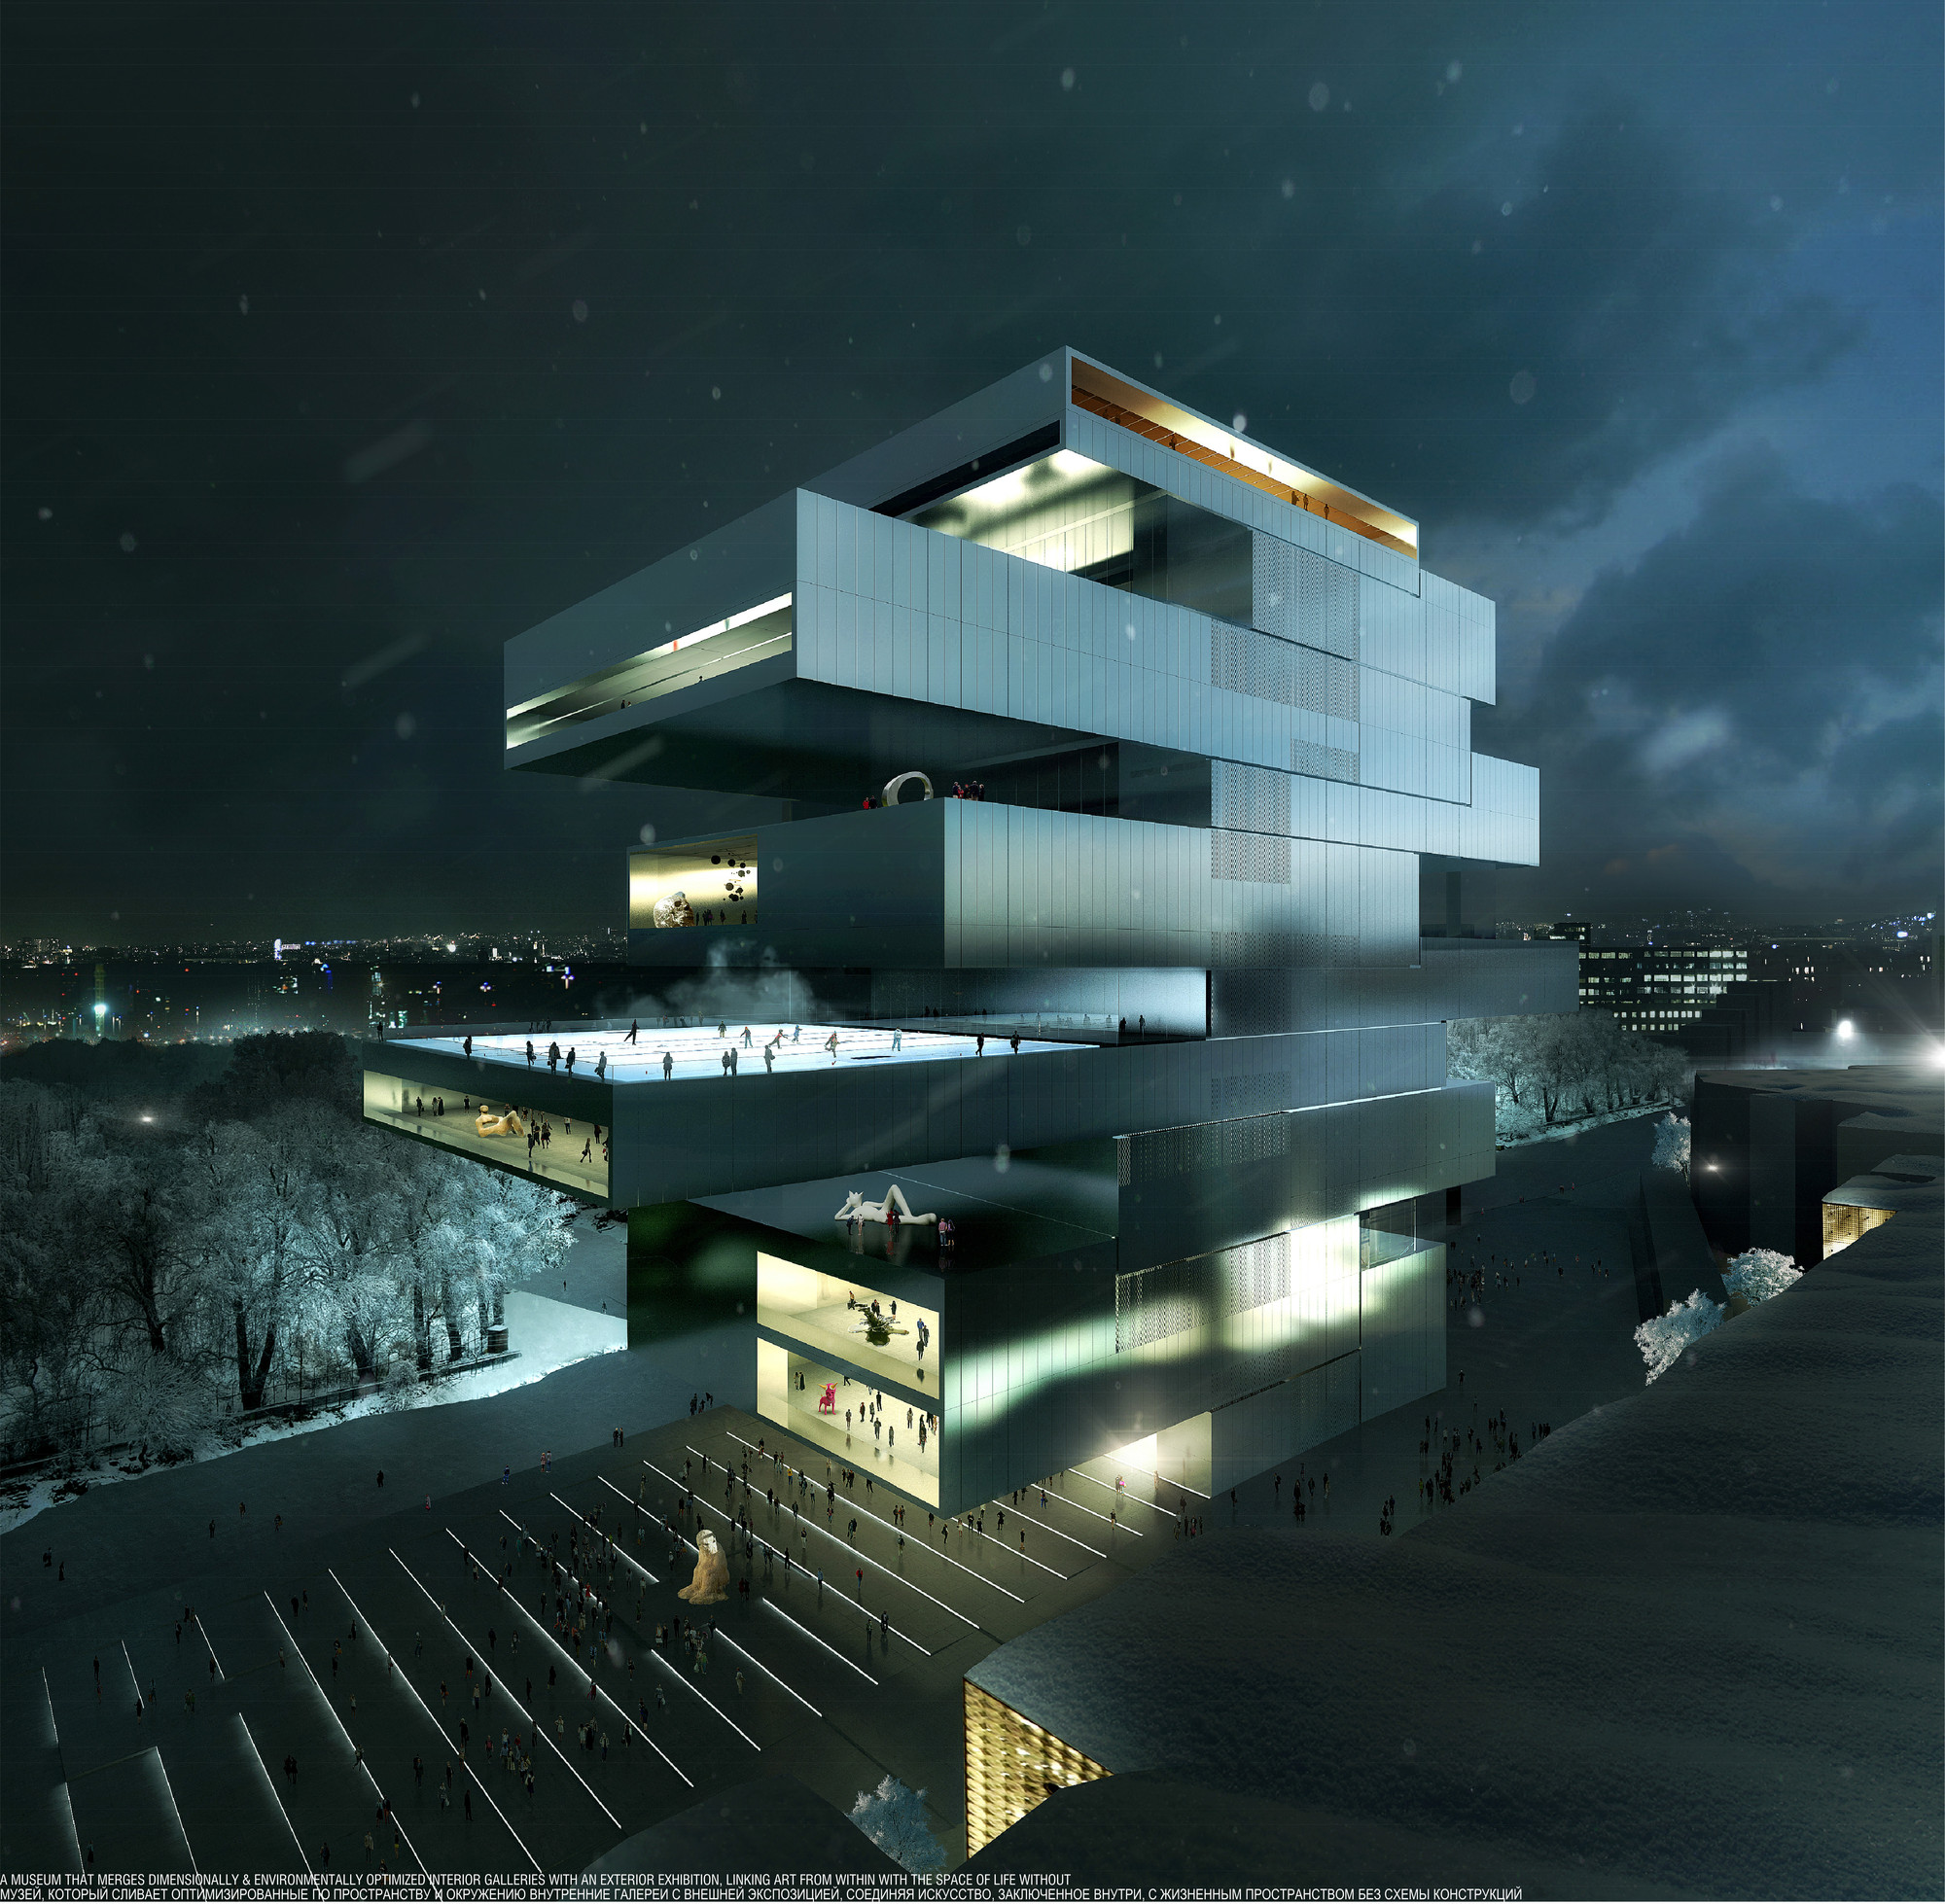 Heneghan Peng Architects Selected to Design Contemporary Arts Center in Moscow, Heneghan Peng Architects' Winning NCCA Proposal. Image Courtesy of NCCA